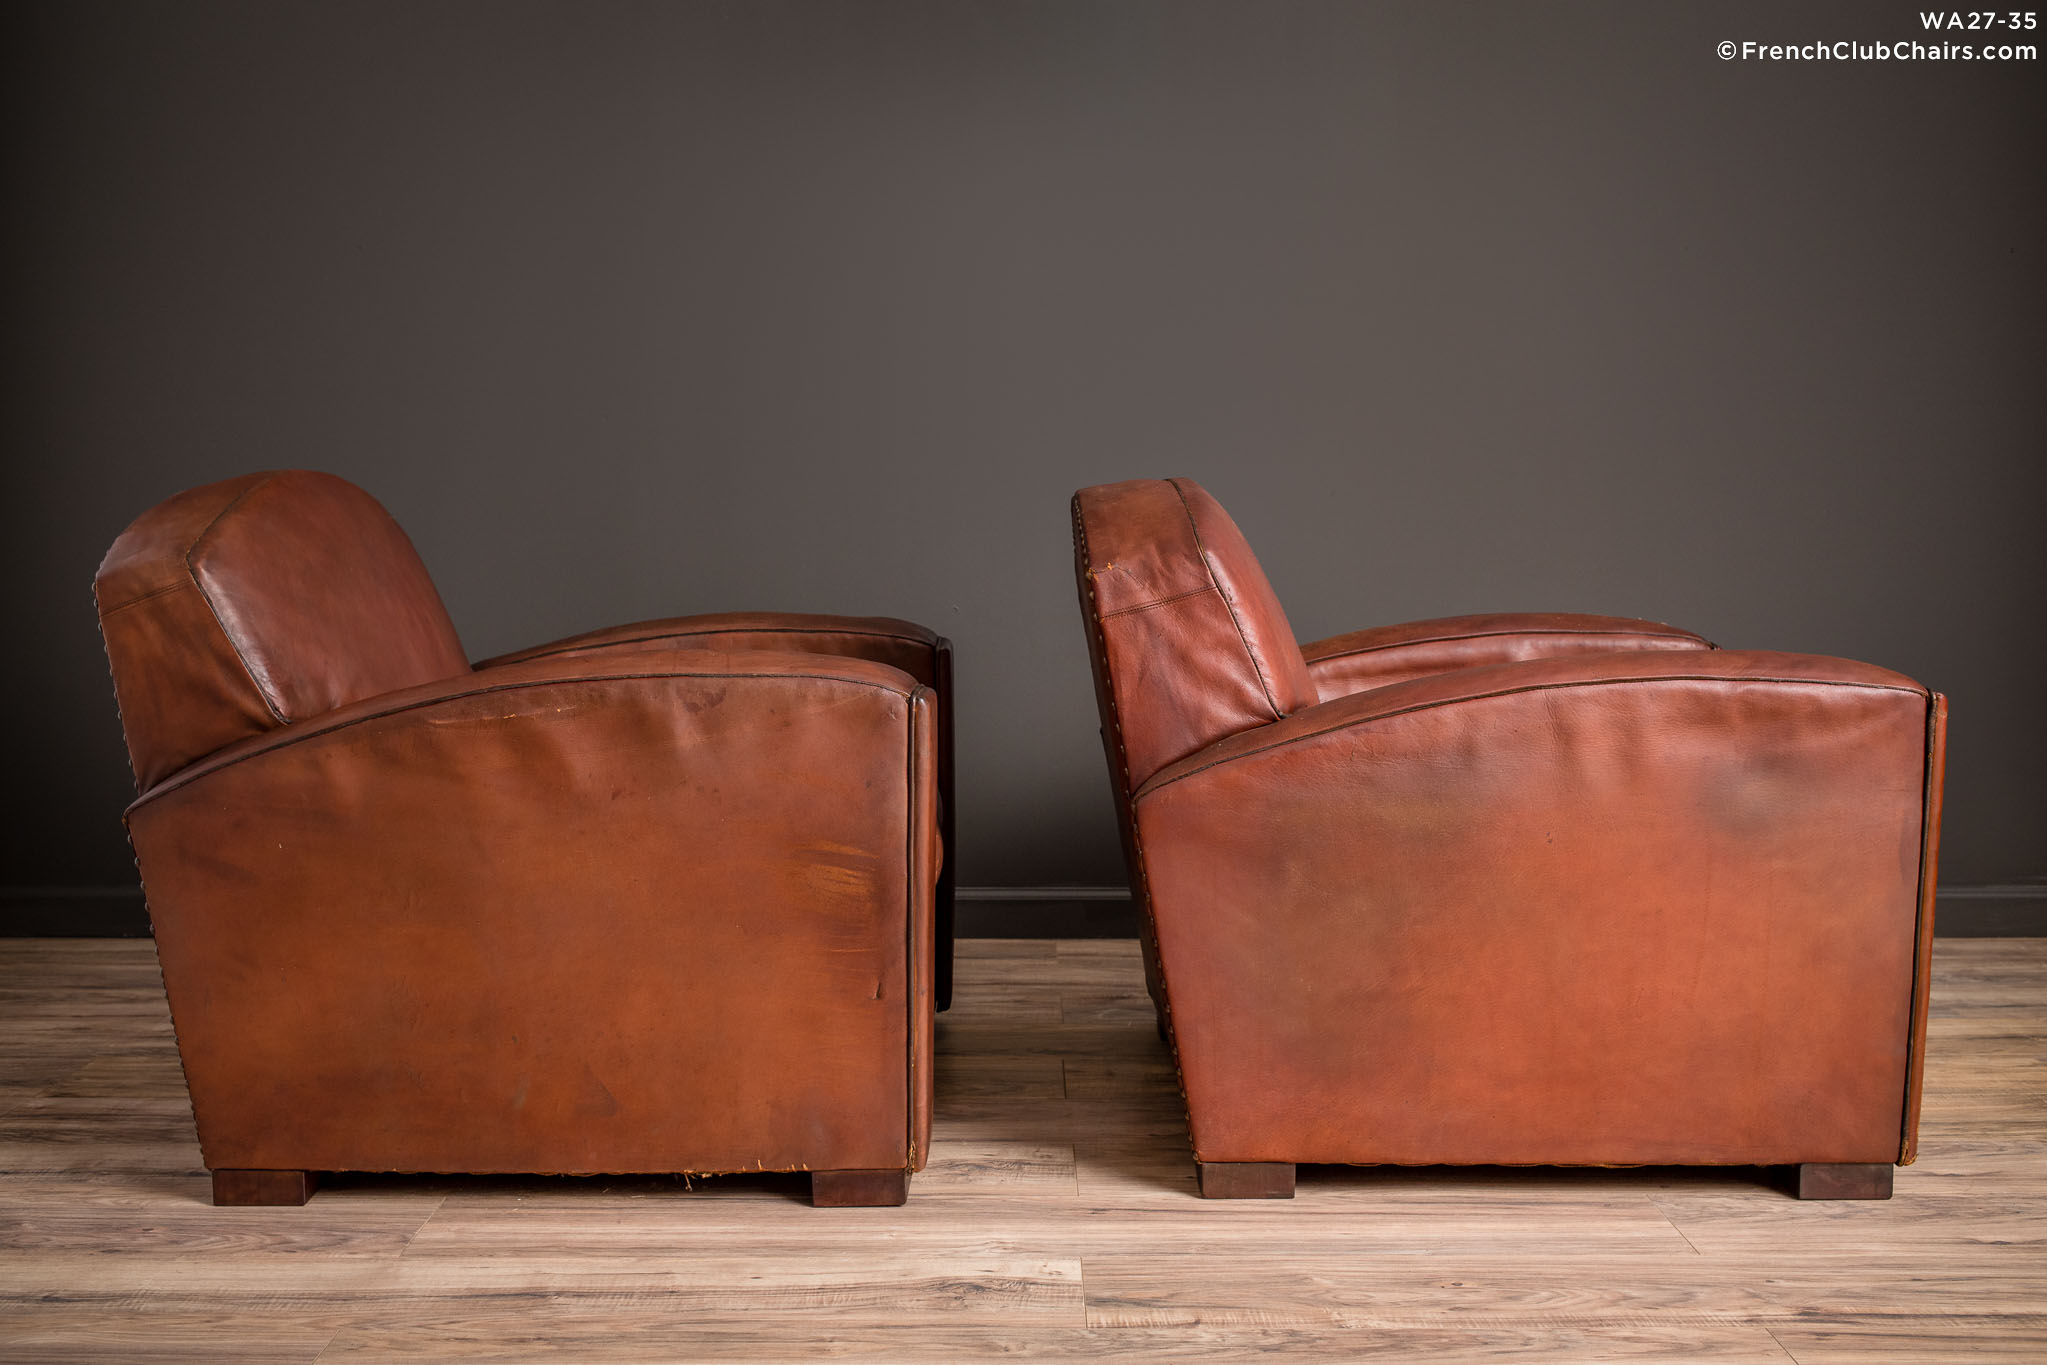 WA_27-35_Cinema_Dark_Lounge_Pair_R_3RT-v01-williams-antiks-leather-french-club-chair-wa_fcccom